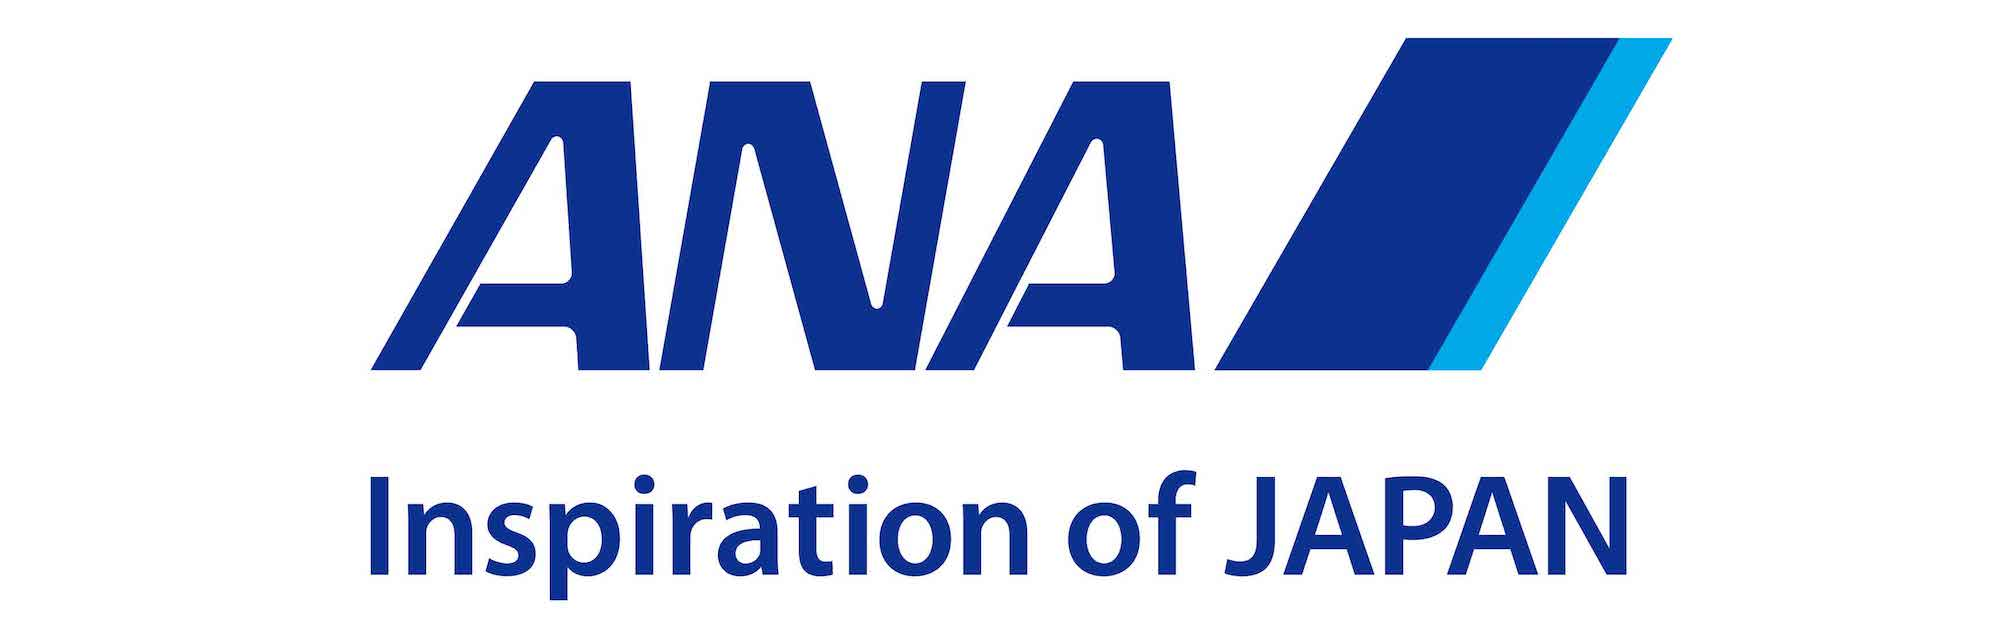 get contact detail of all All Nippon airways offices like phone numbe,r fax, address, email and working hours.